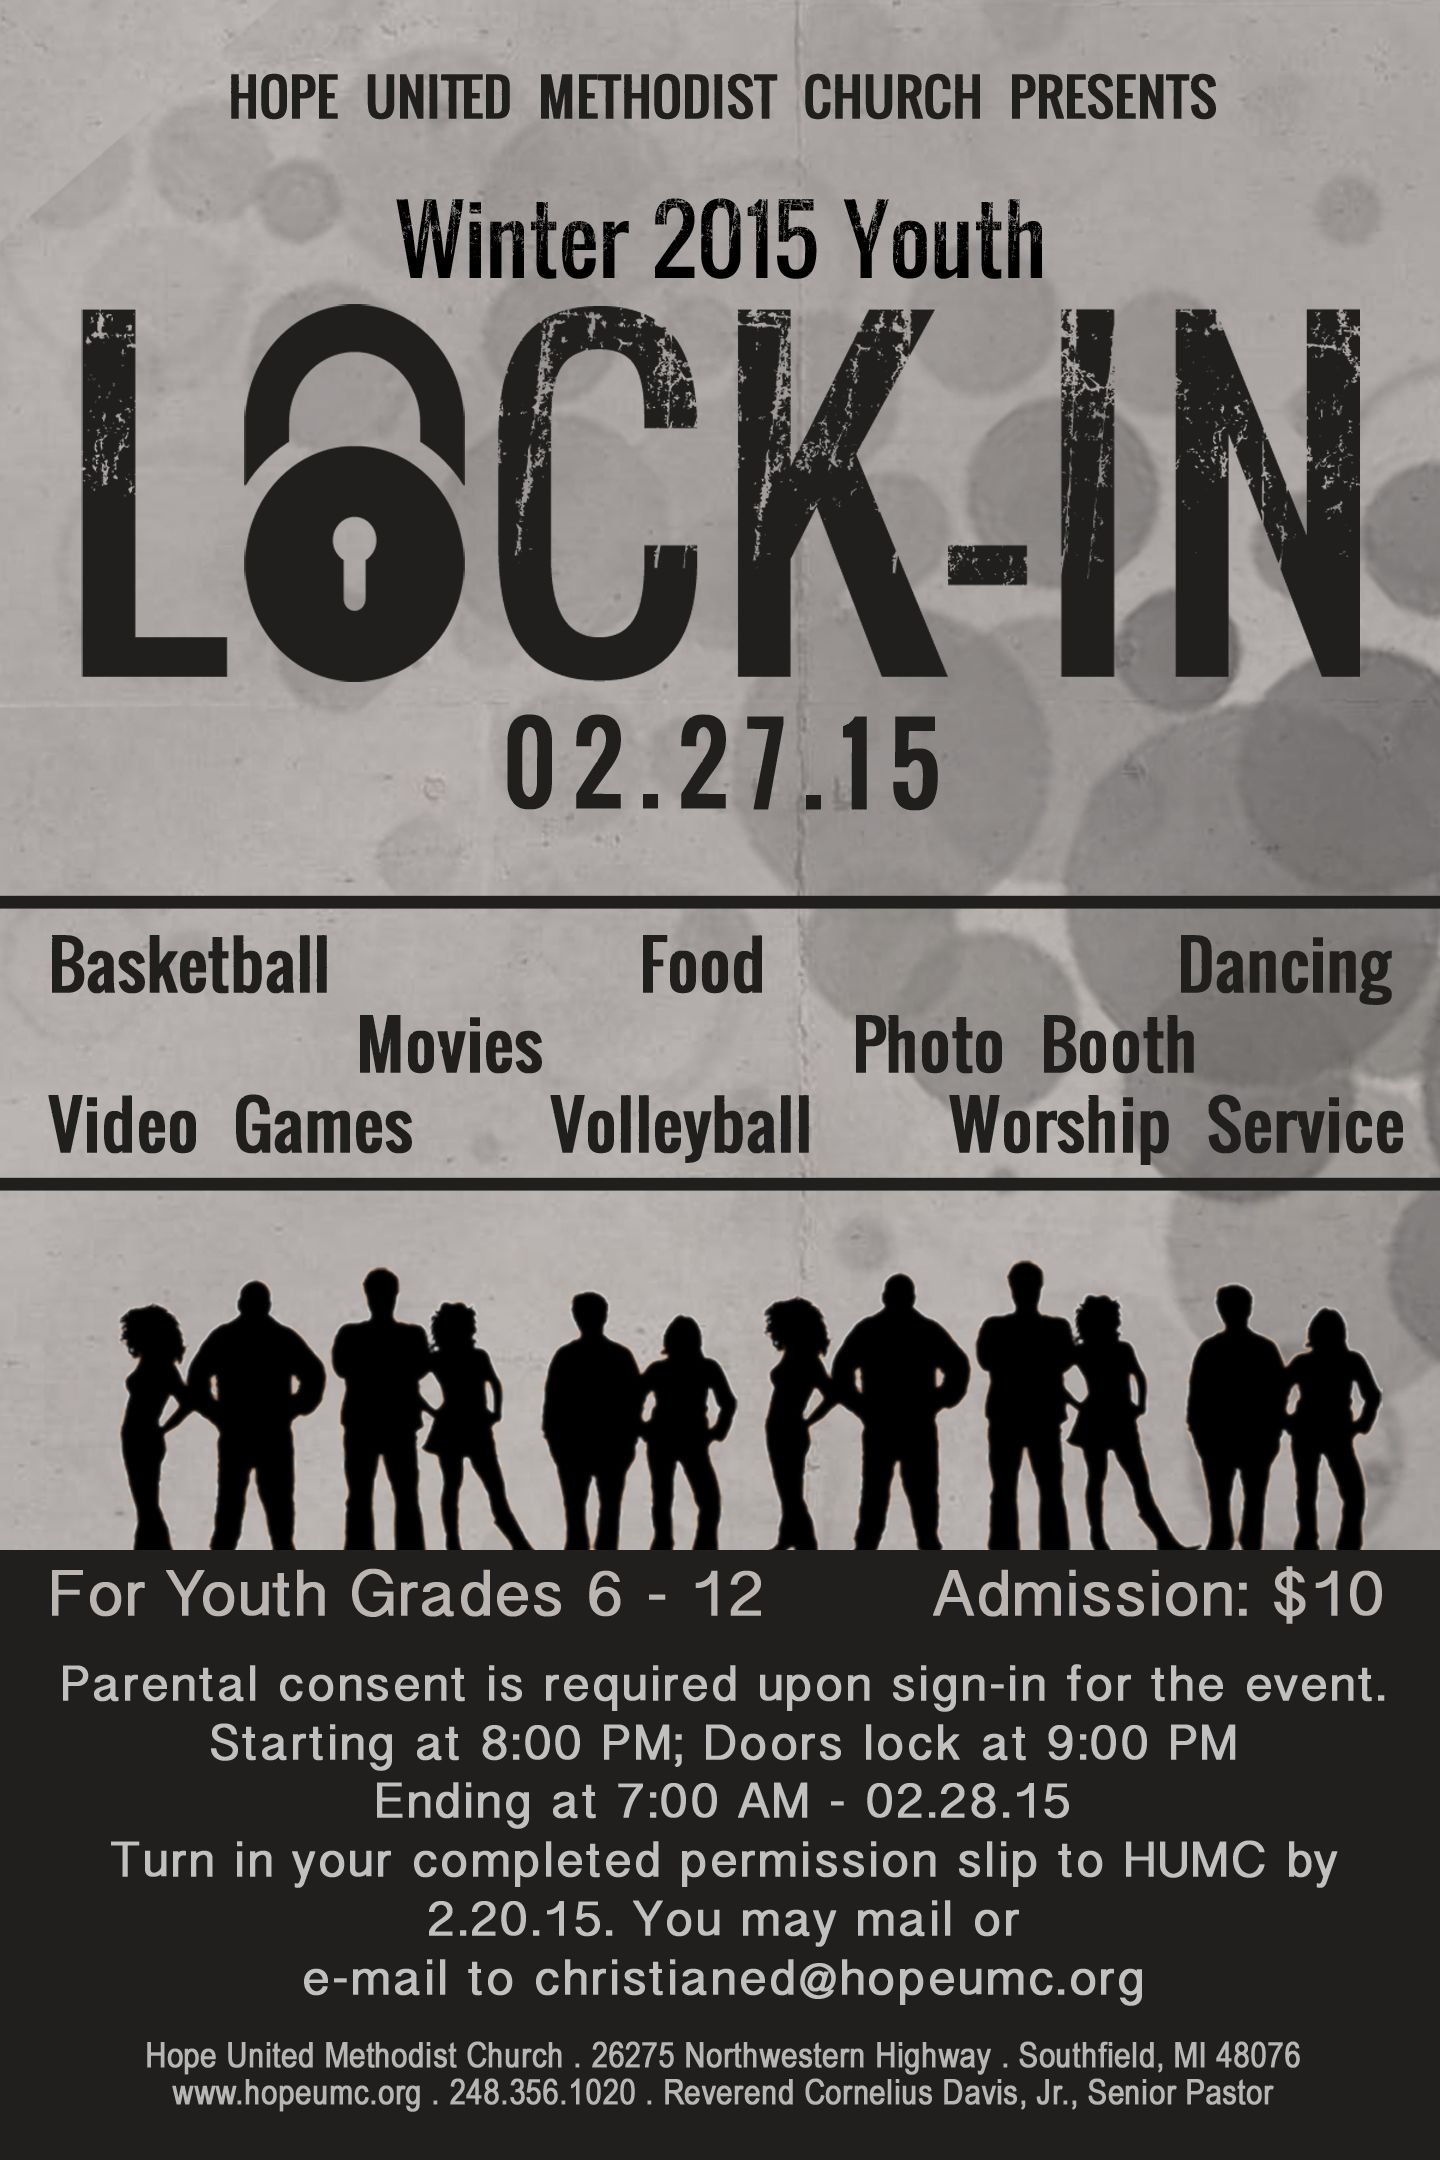 Submit Your Permission Slip By February 20 For The Youth Lock In